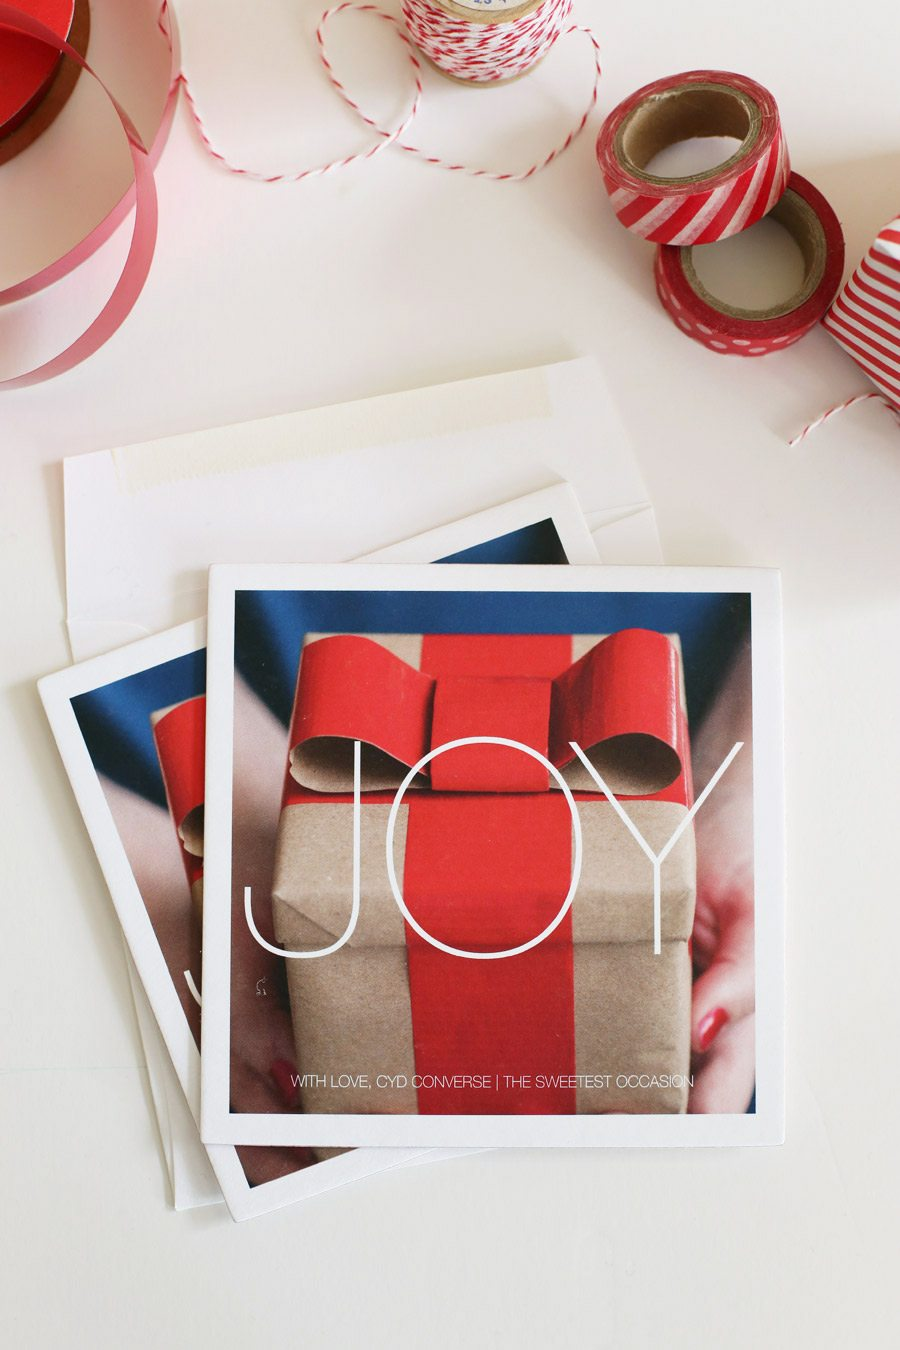 Holiday Cards from Pinhole Press | The Sweetest Occasion